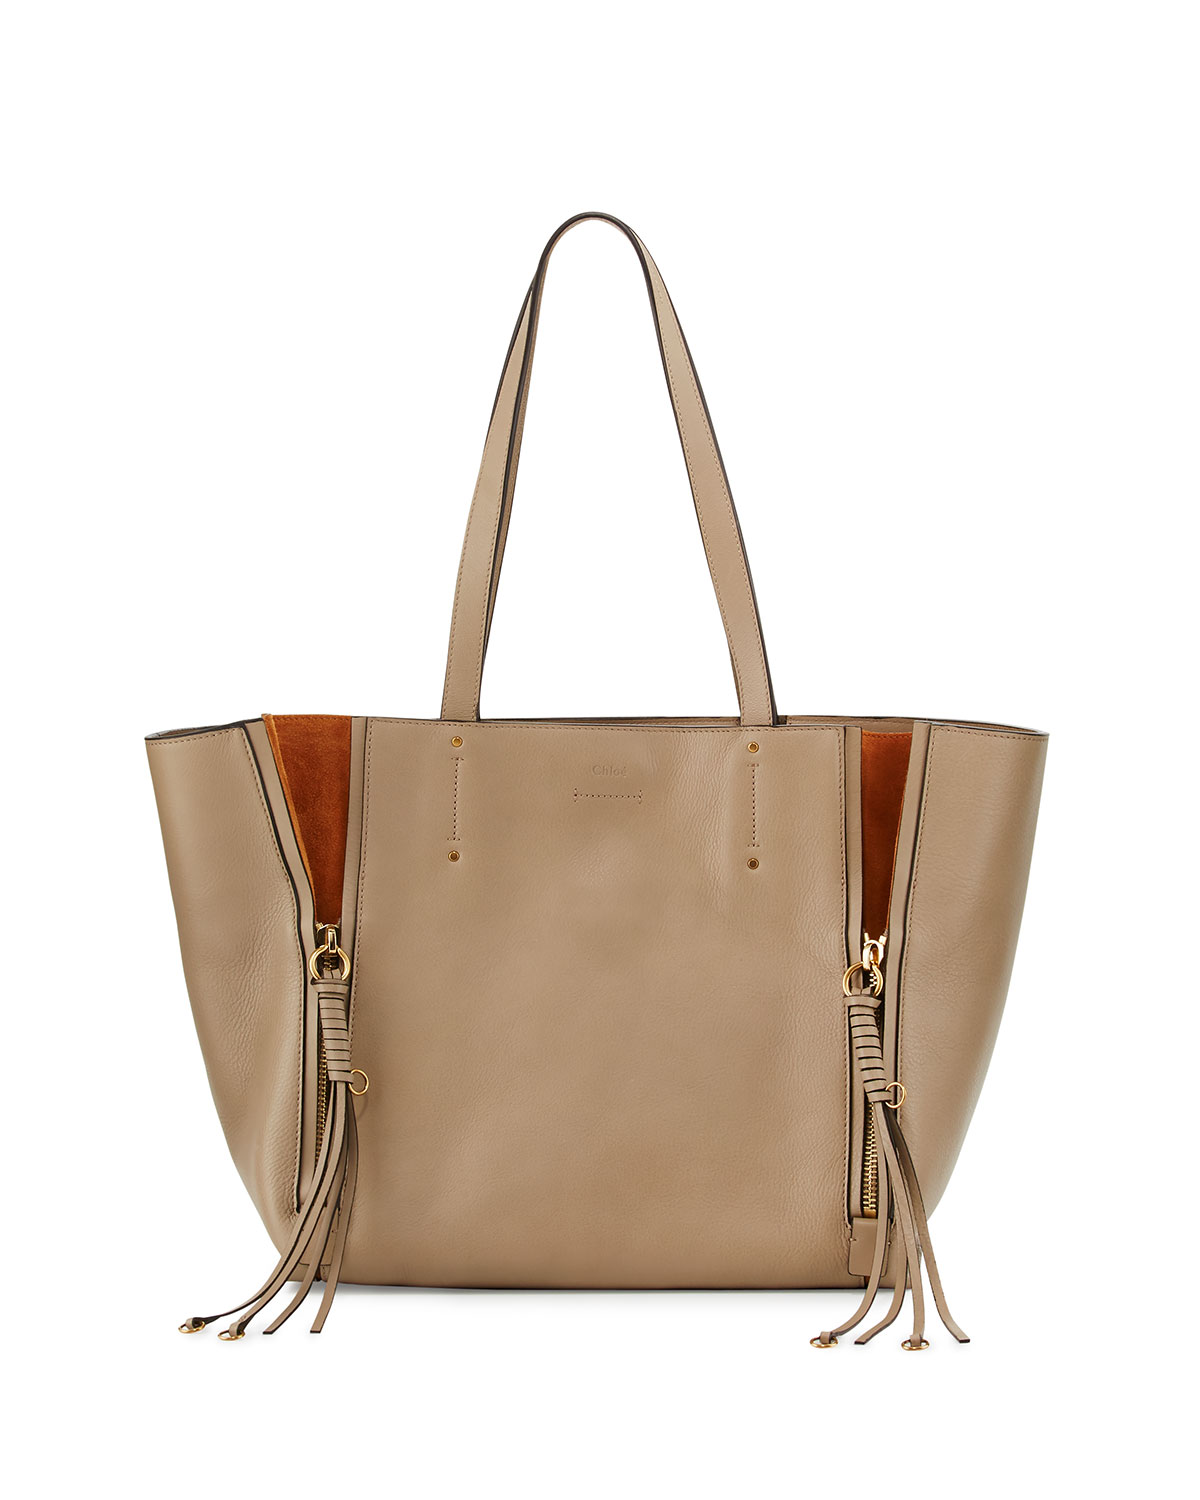 cee65e05e Chloe Milo Medium Leather & Suede Tote Bag | Neiman Marcus